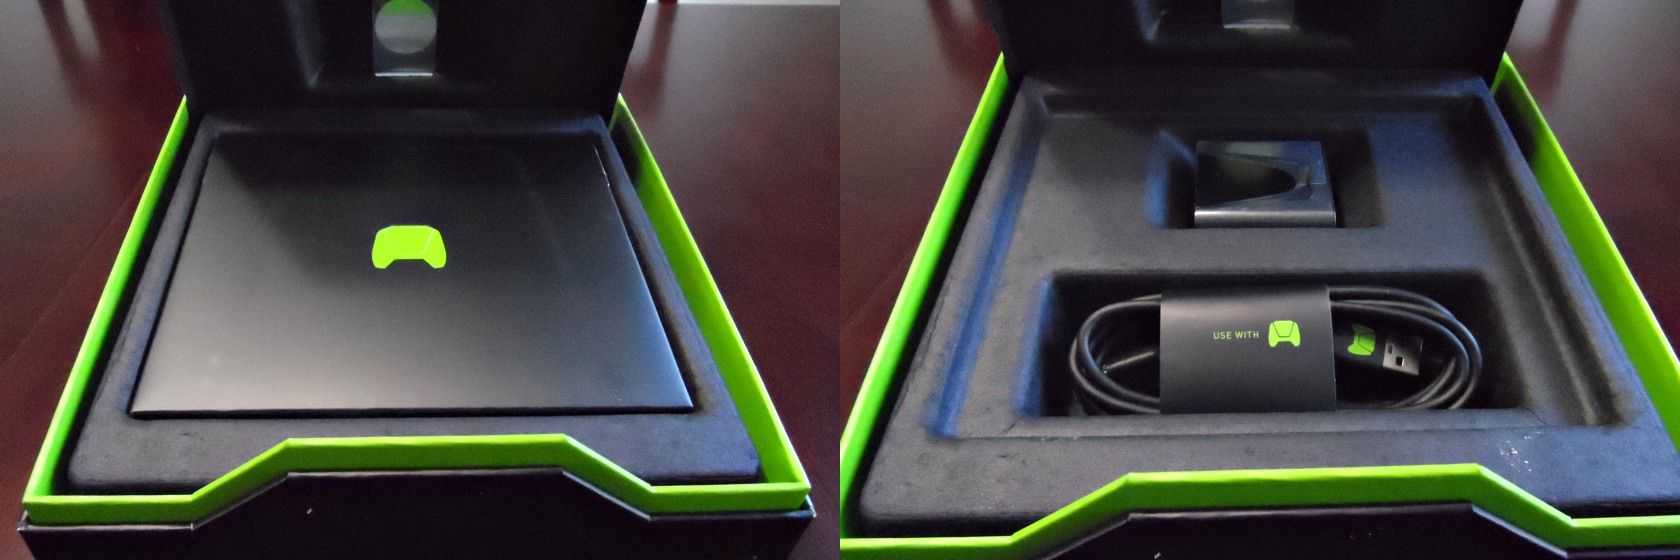 nvidia shield android gaming